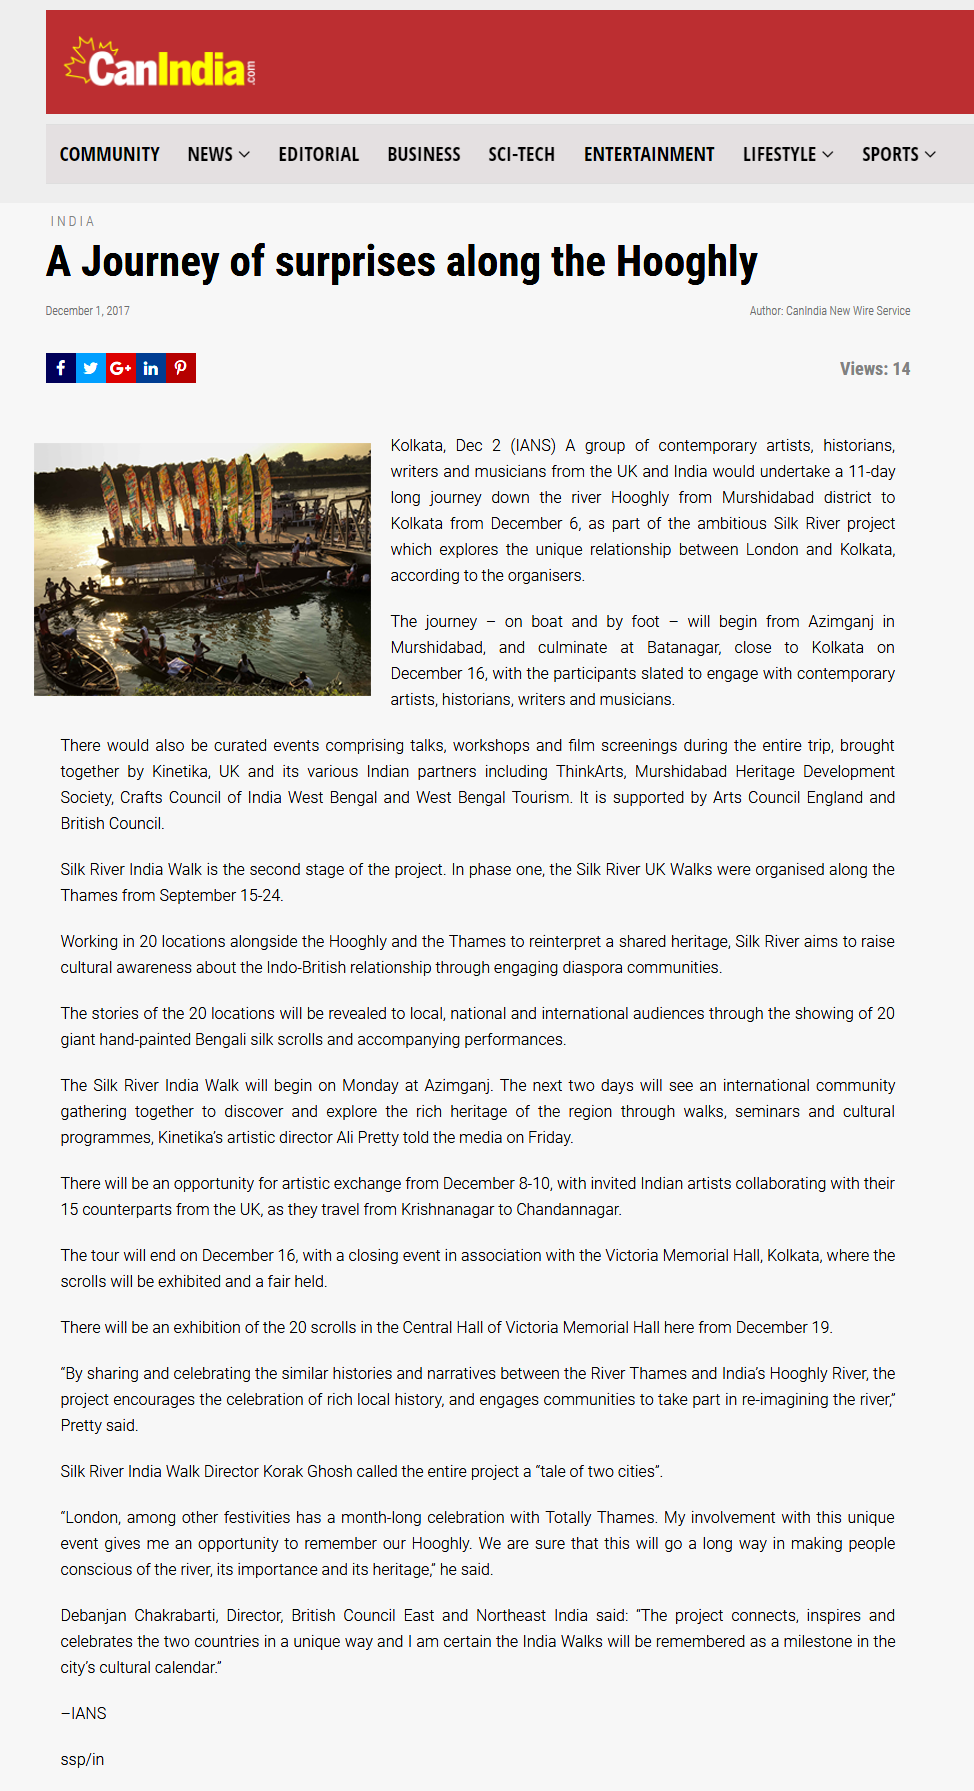 CanIndia article - a journey of surprises along the Hooghly